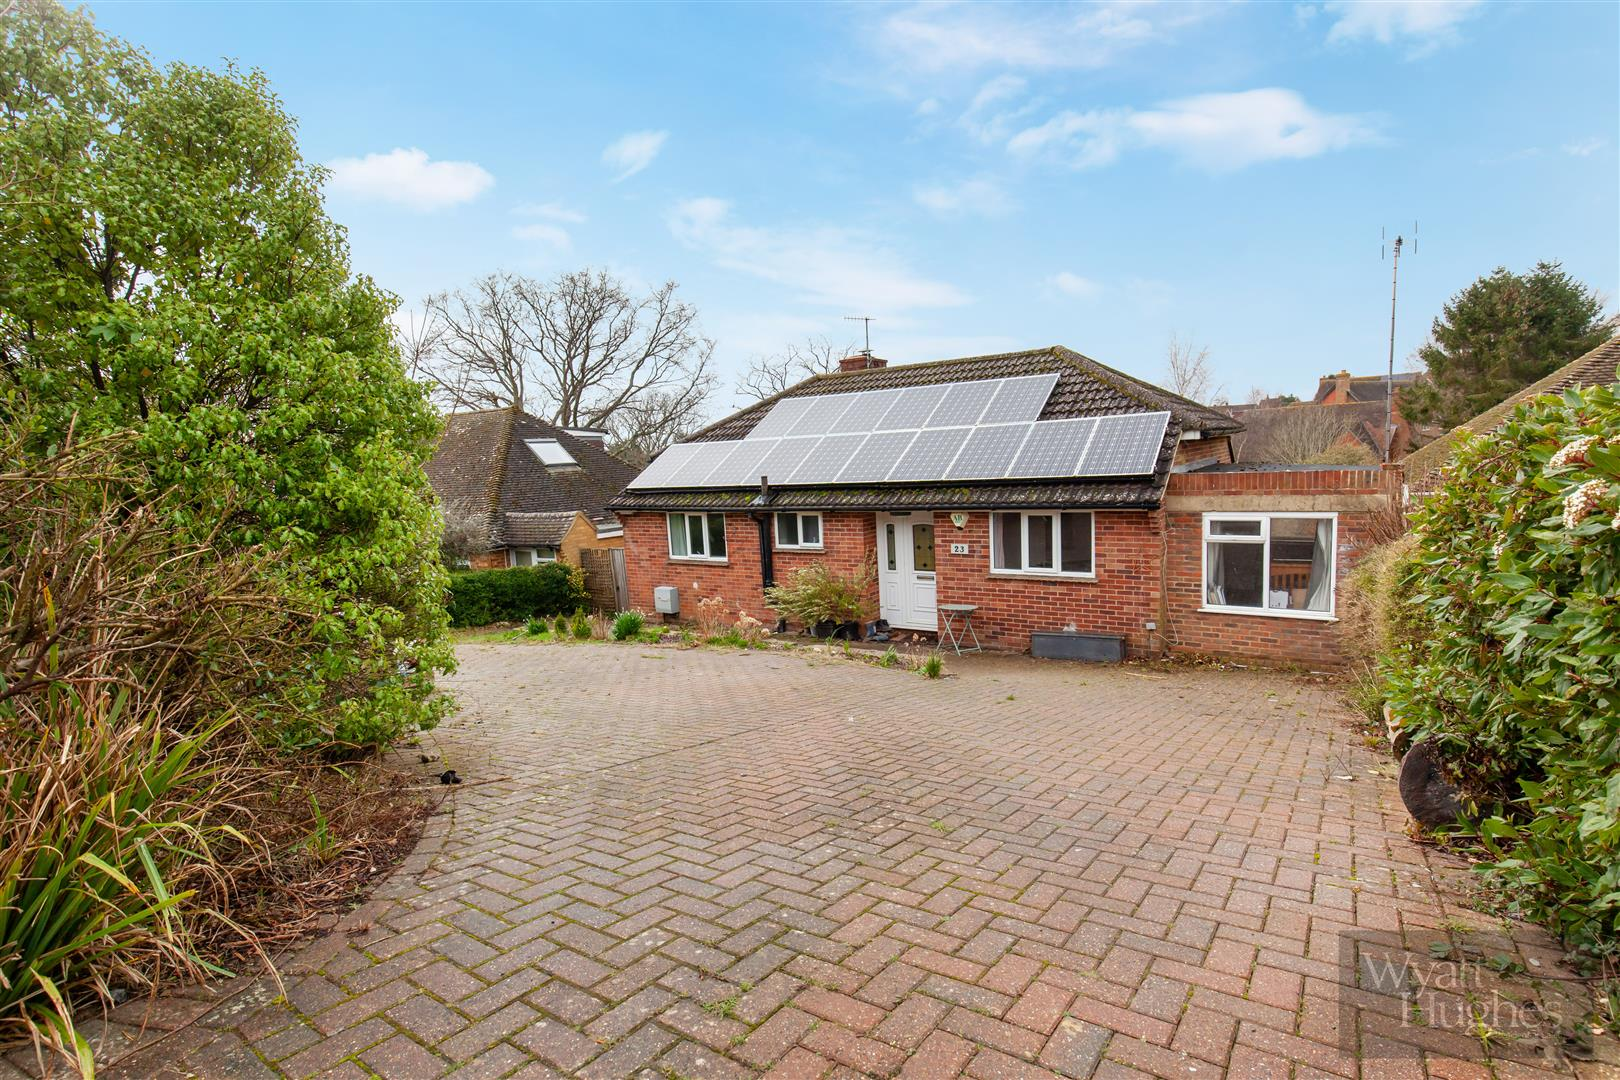 4 bed detached-bungalow for sale in Gorselands, Battle  - Property Image 3